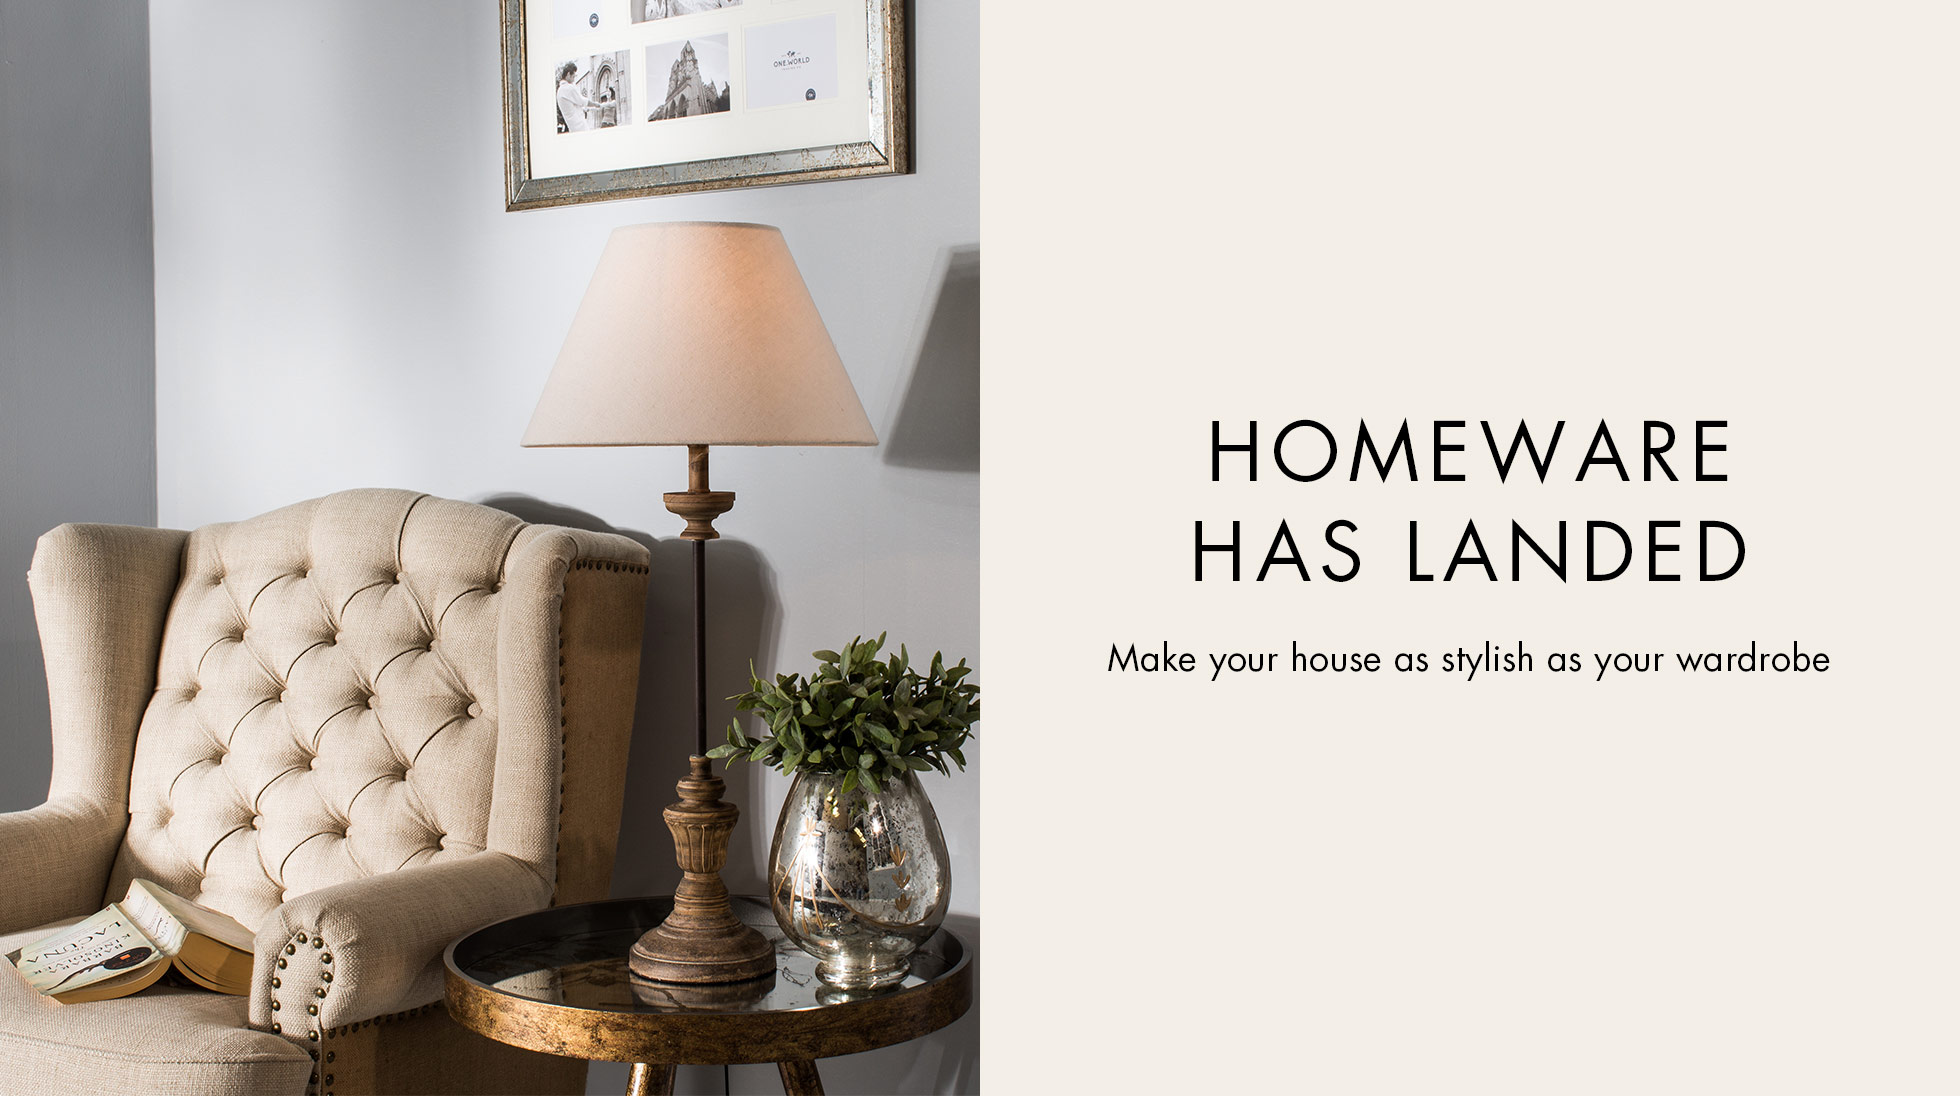 HOMEWARE HAS LANDED